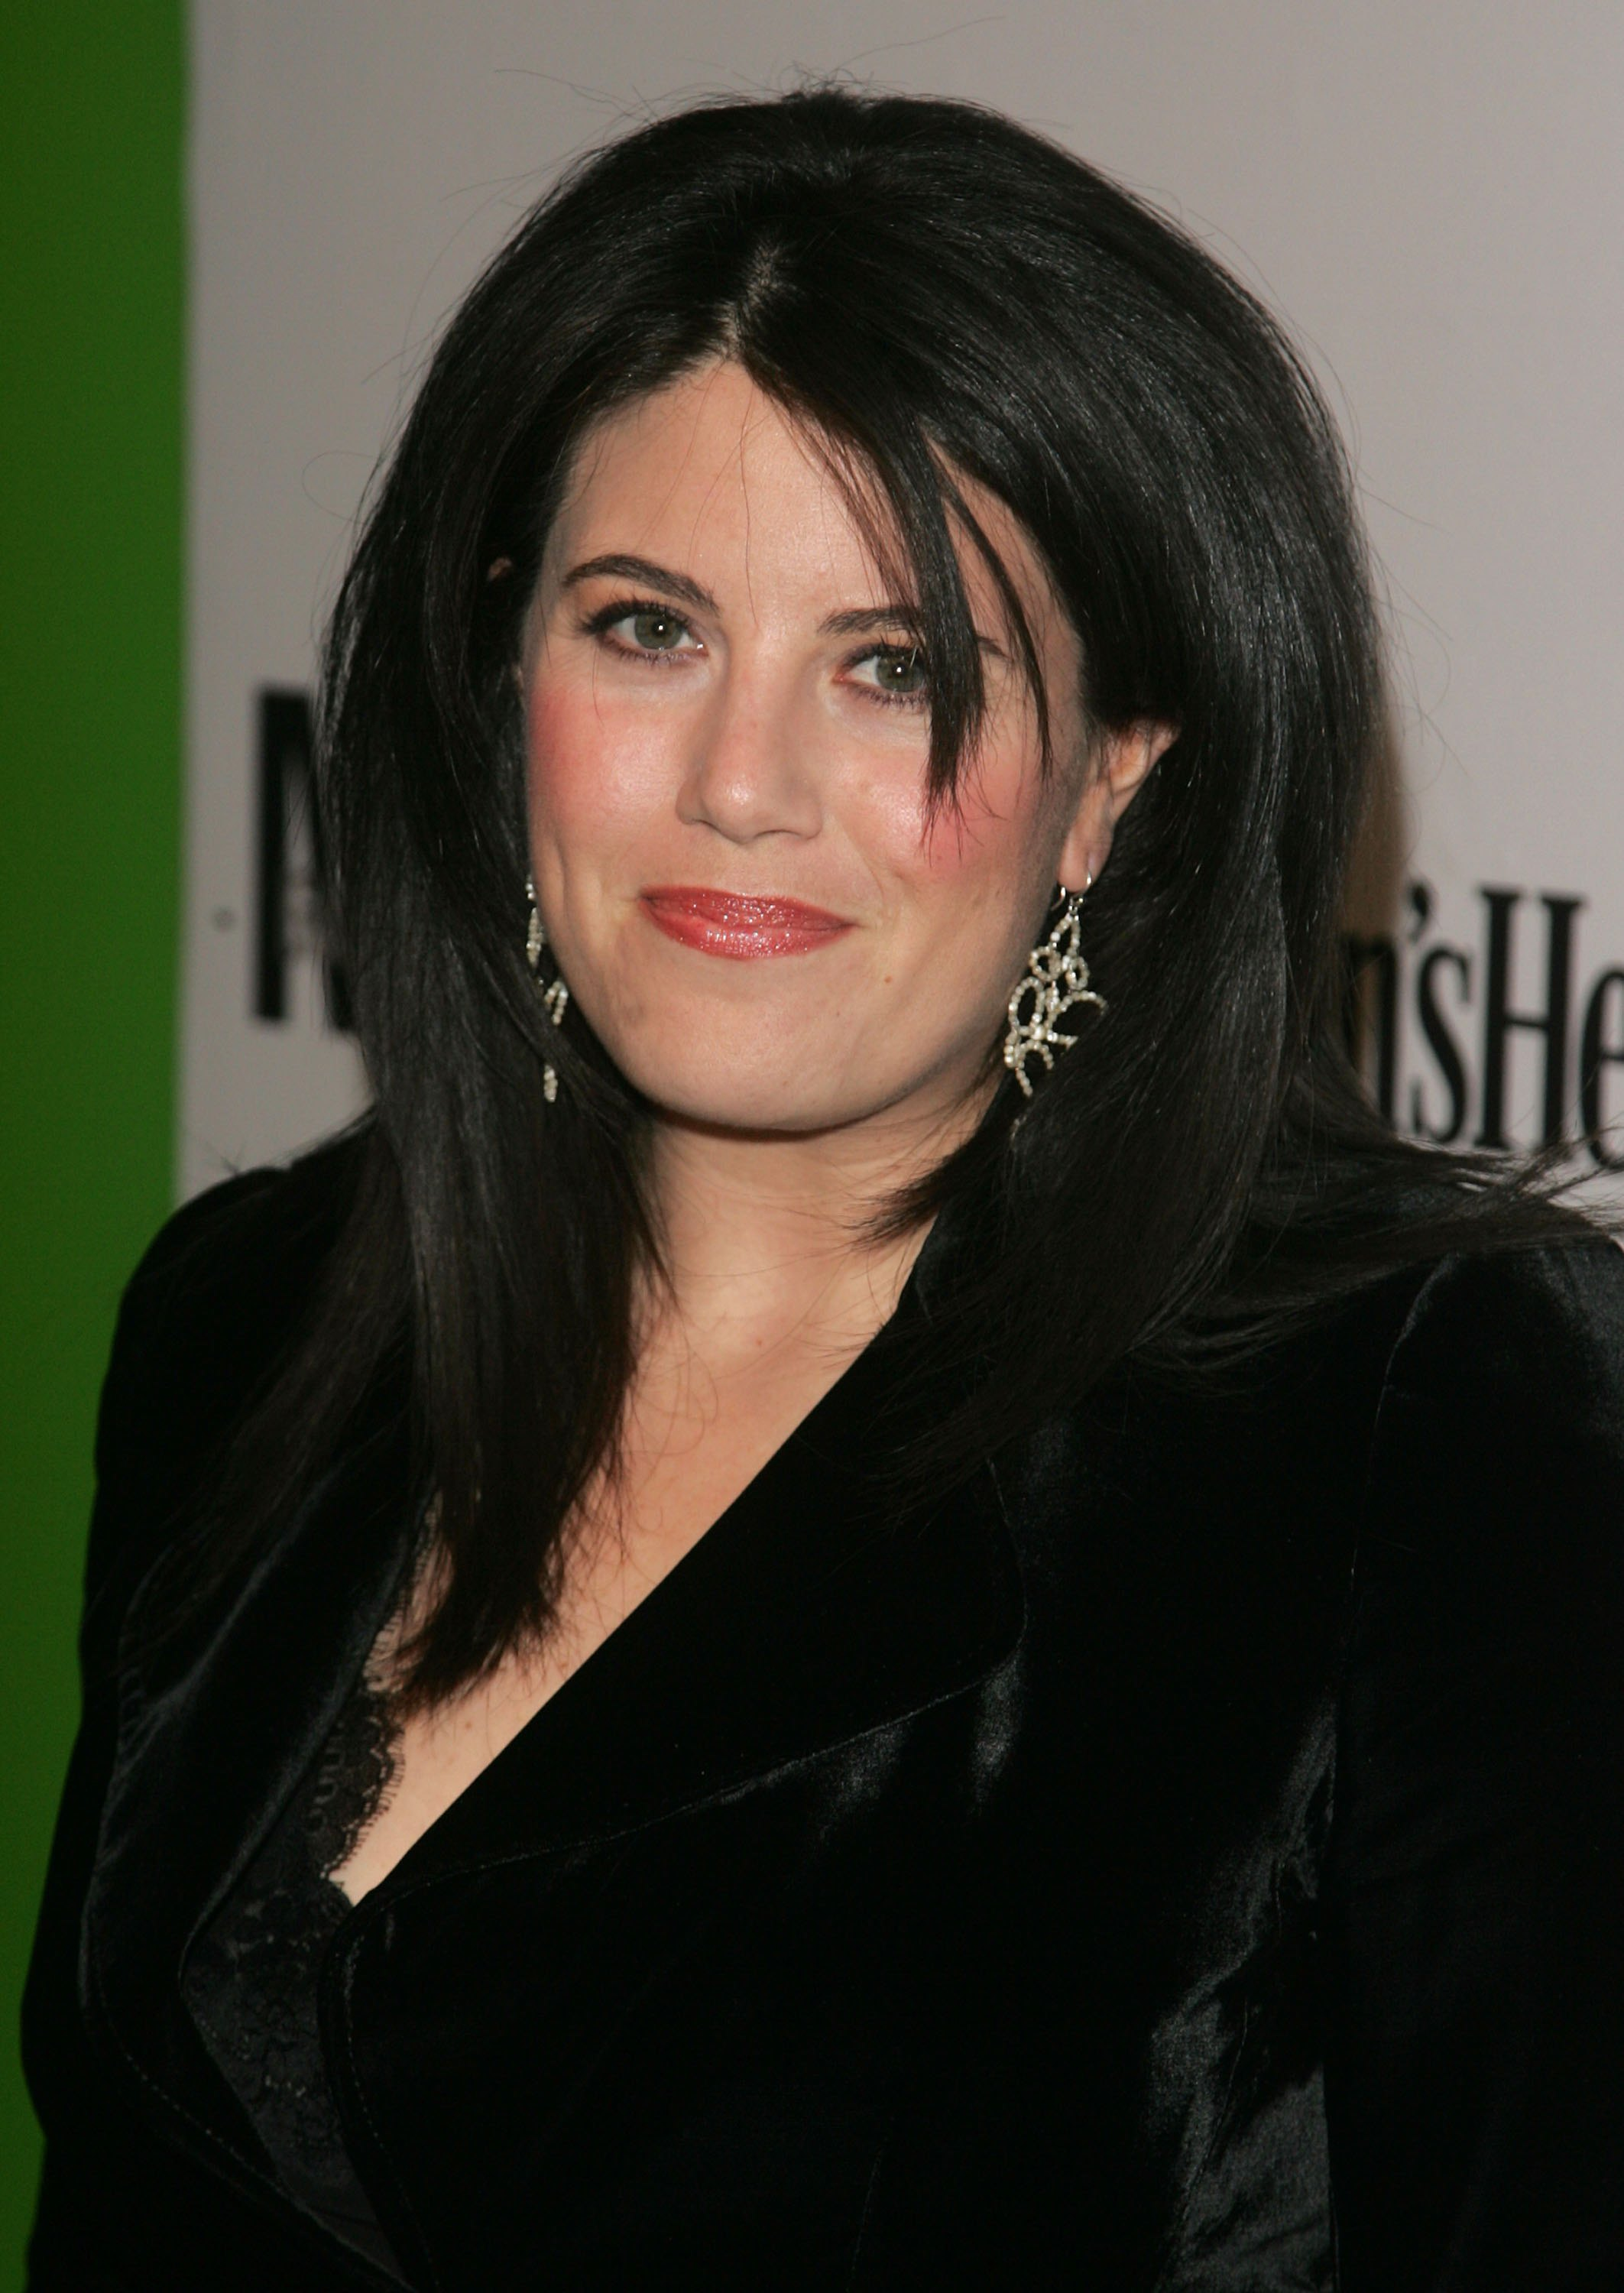 Monica Lewinsky gives speech, joins Twitter